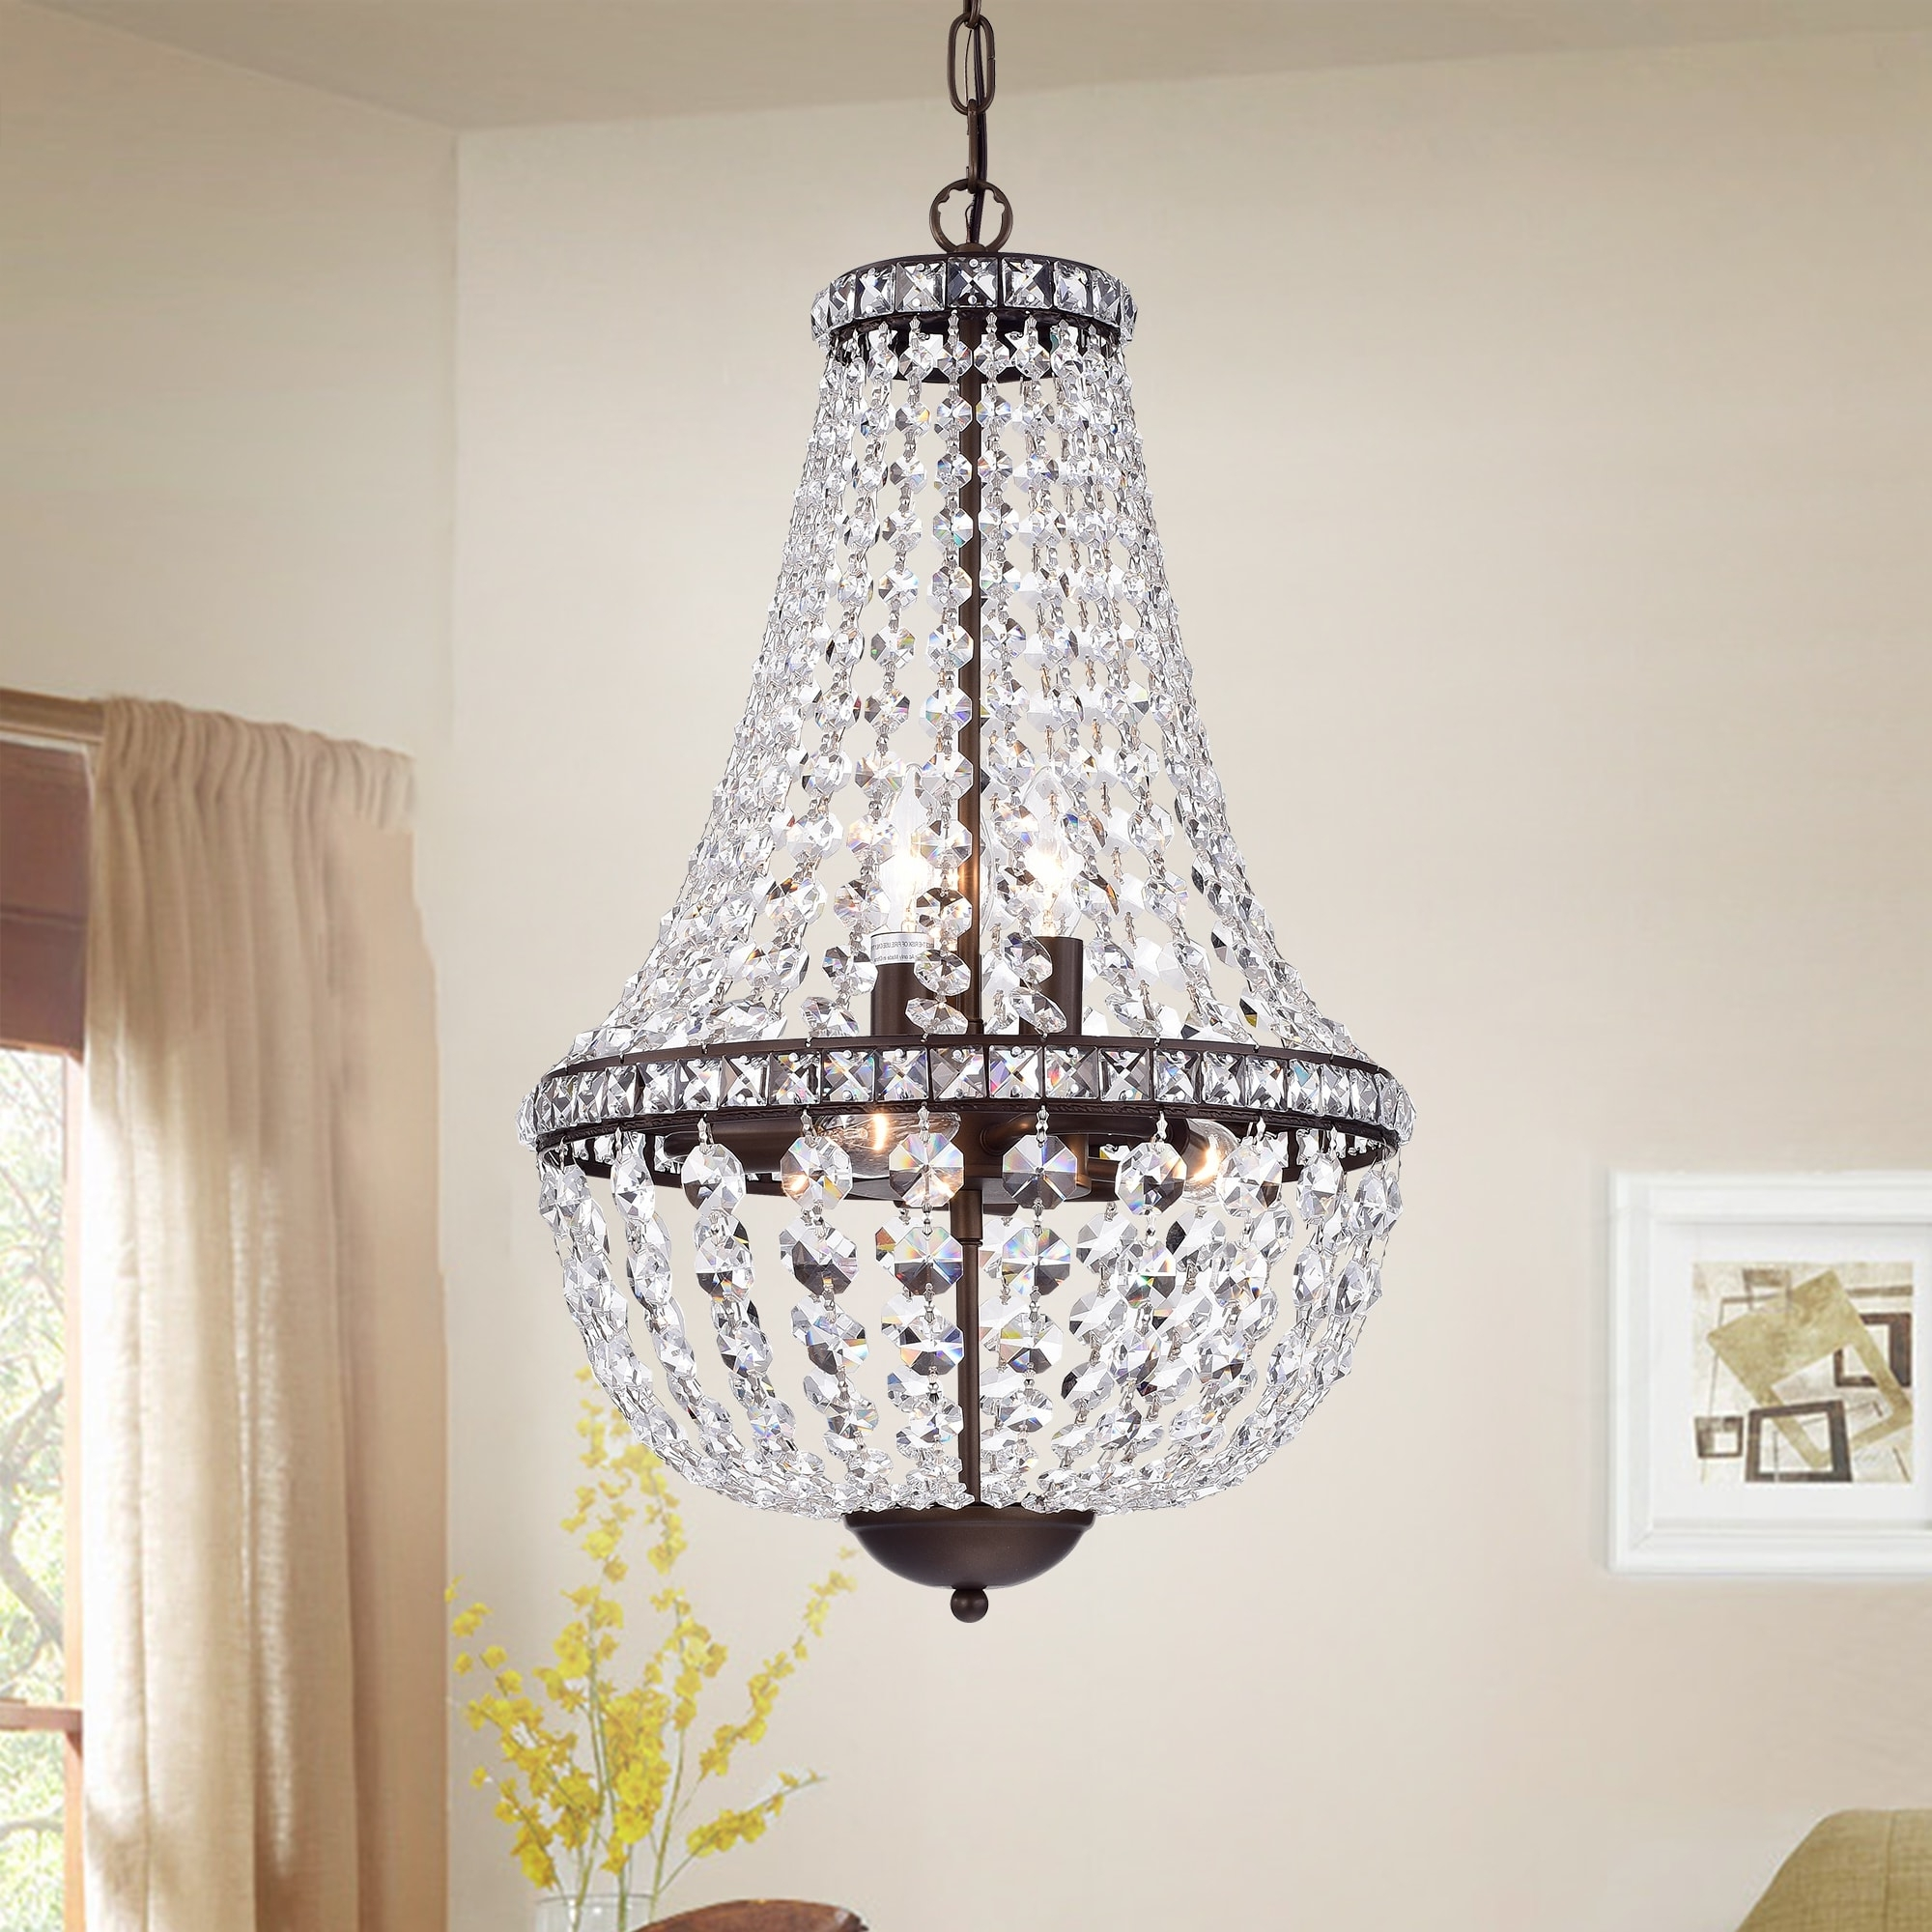 Antique Black Chandelier Pertaining To Most Popular Uanah 6 Light Crystal Antique Black Chandelier – Free Shipping Today (View 7 of 20)